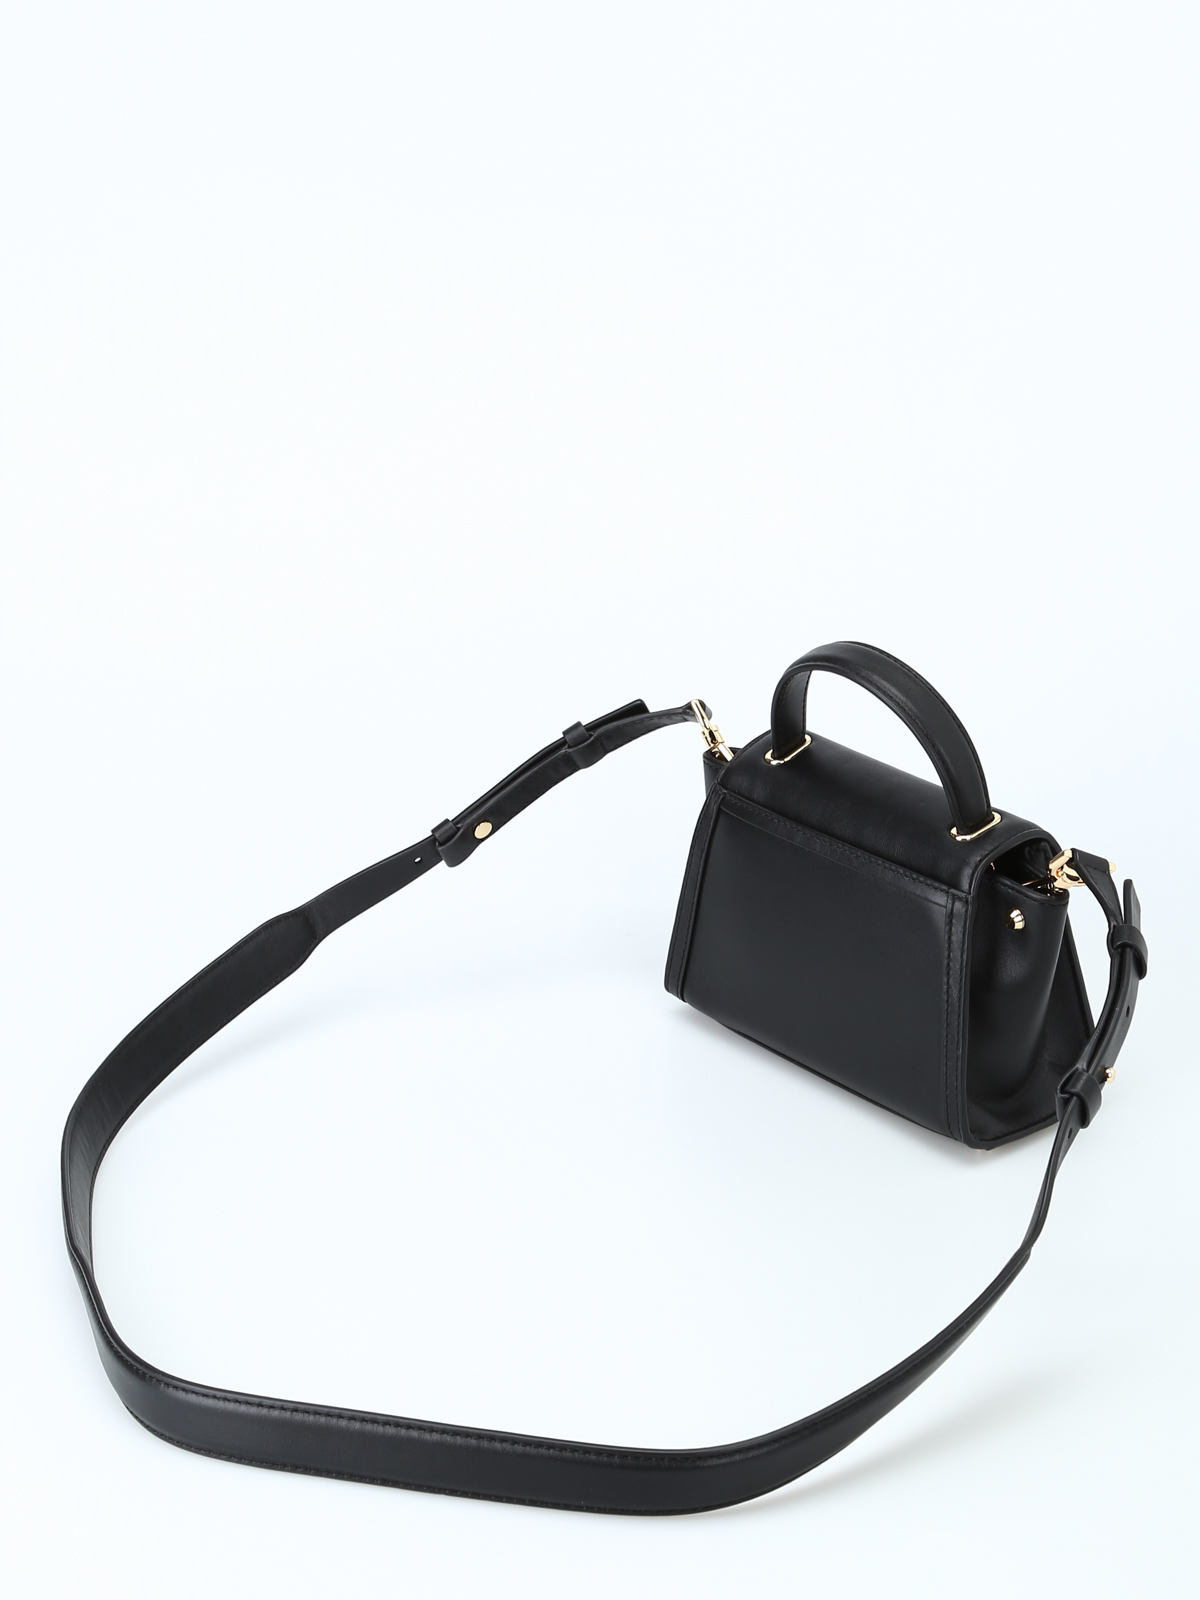 sbadigli Dentro animale  buy > michael kors mini bag black > Up to 74% OFF > Free shipping